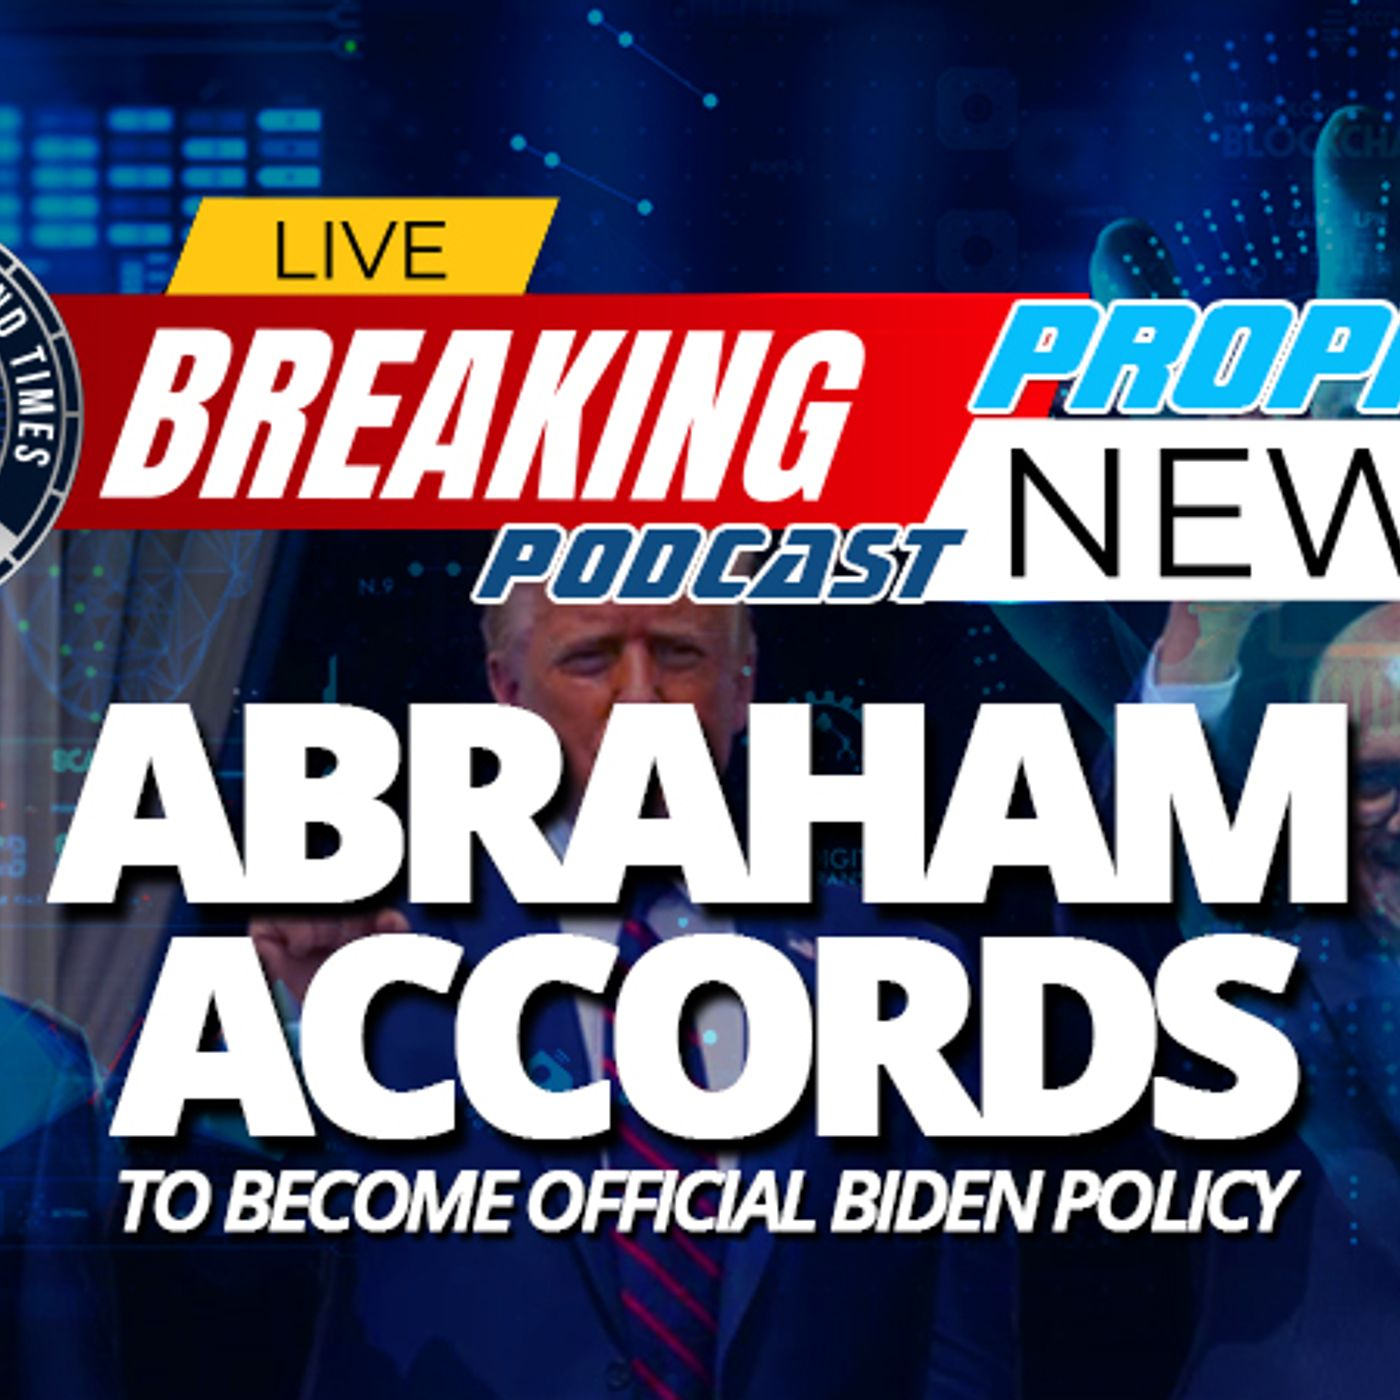 NTEB PROPHECY NEWS PODCAST: Congress Preparing 'Israel Relations Normalization Act of 2021' Bill To Expand Abraham Accords Peace Treaty